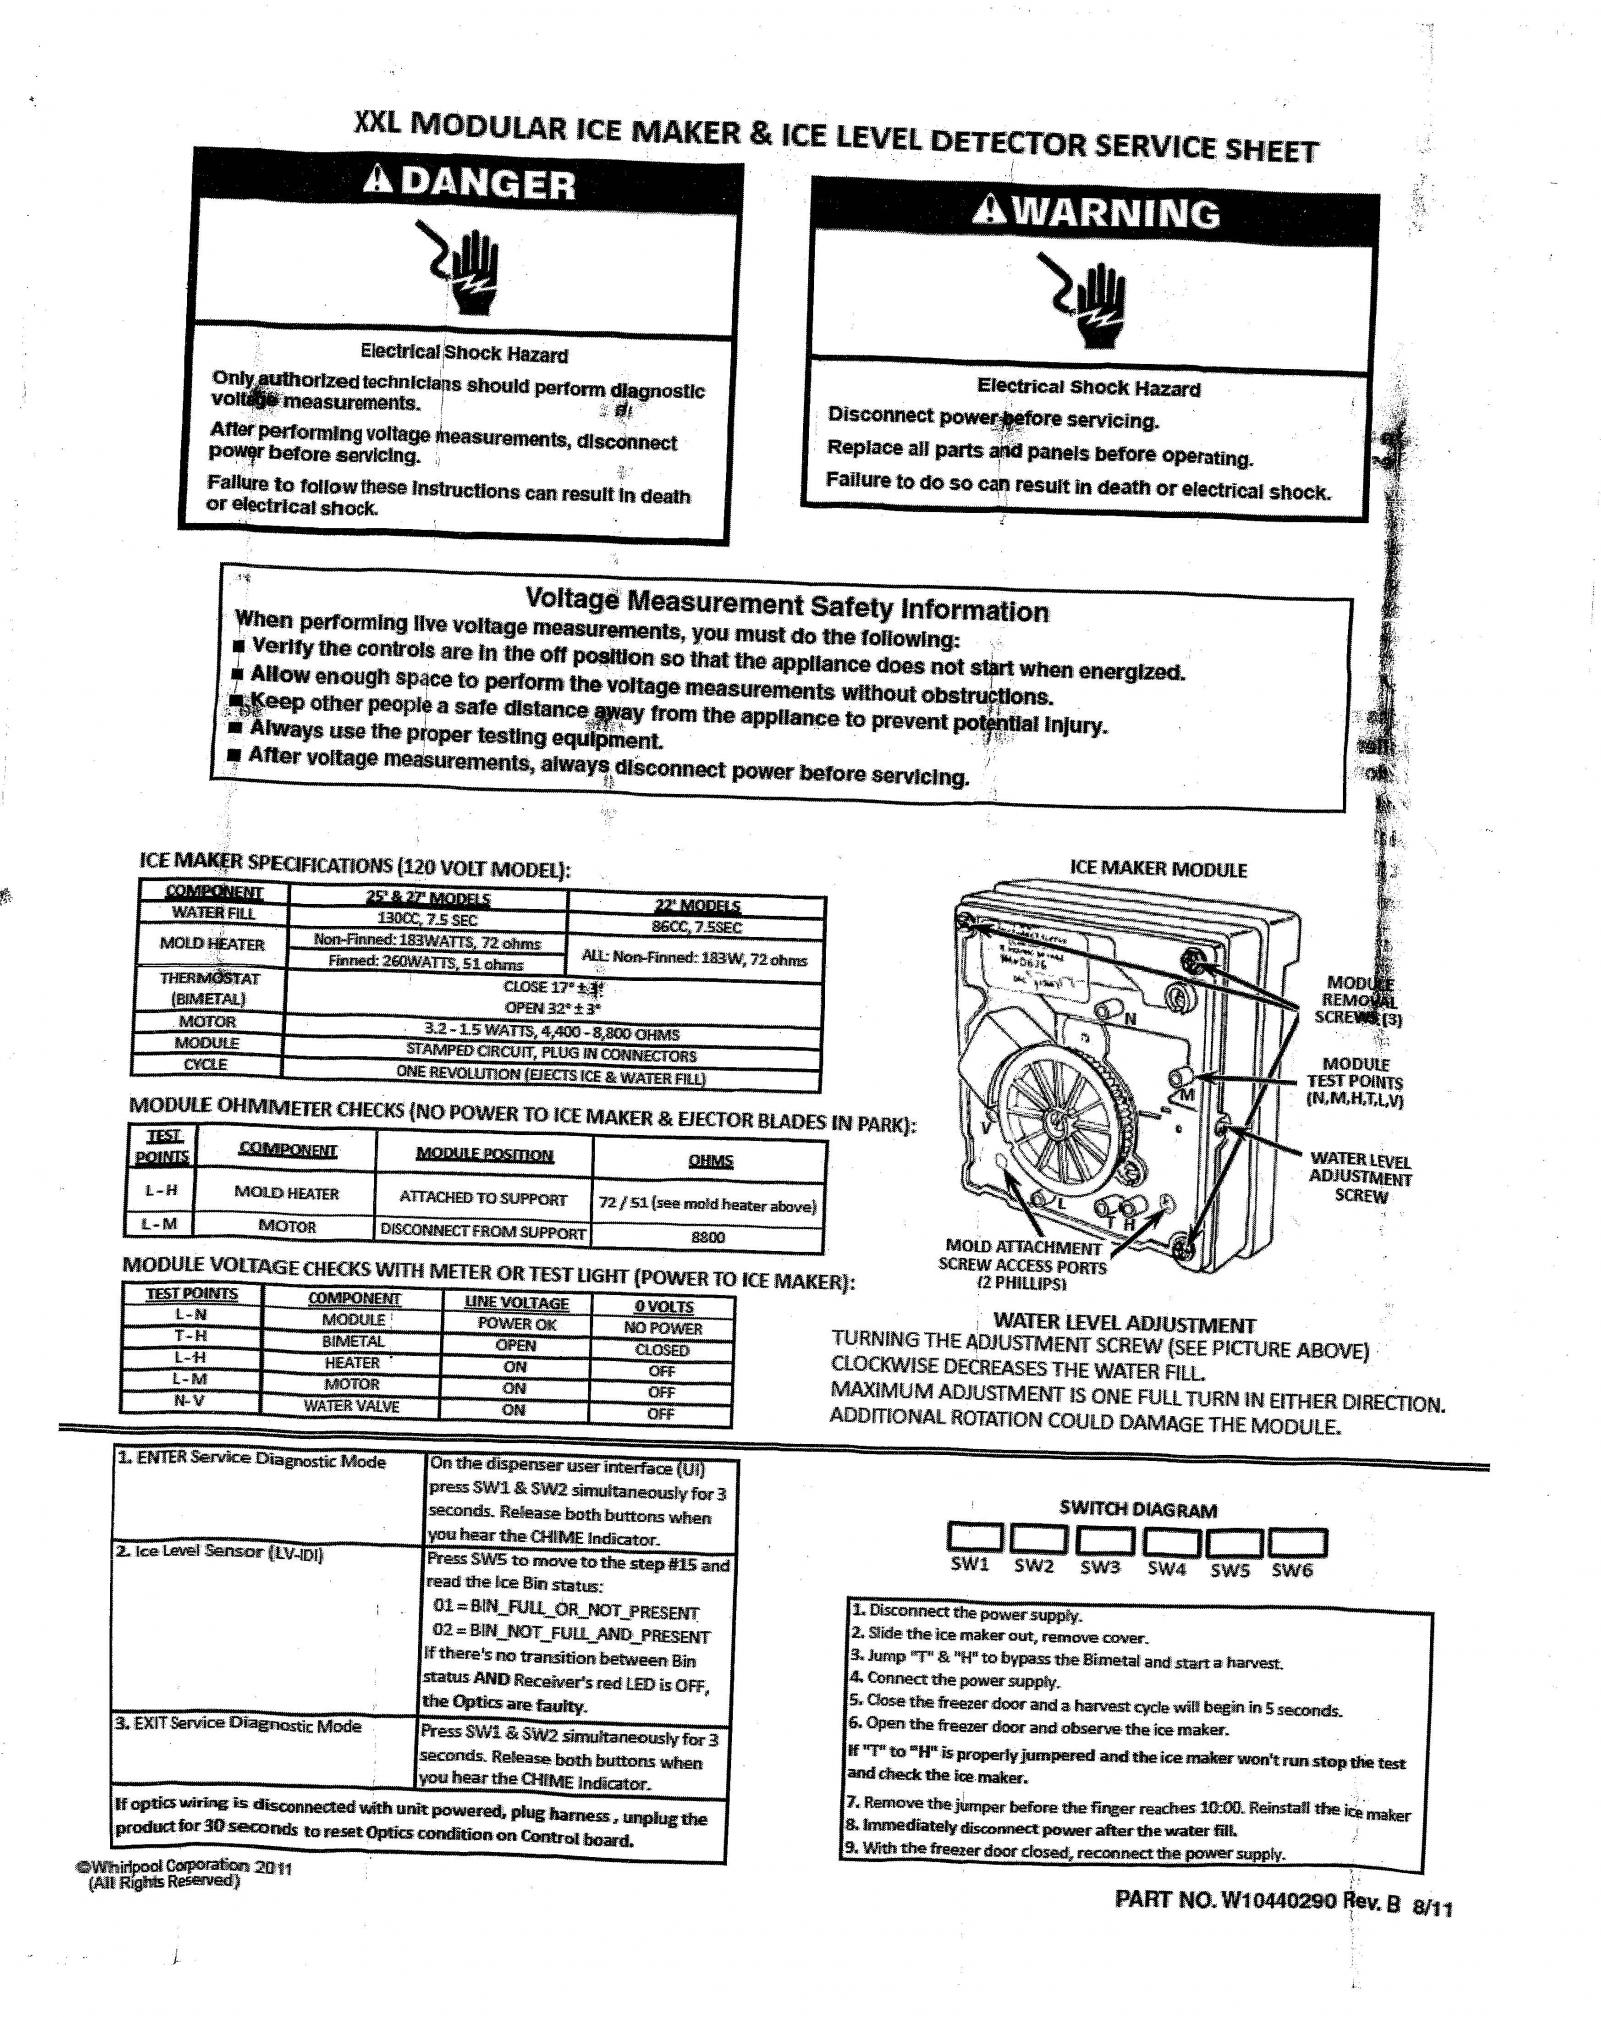 Whirlpool Refrigerator Ice Maker Parts Also Ice Maker Wiring Diagram